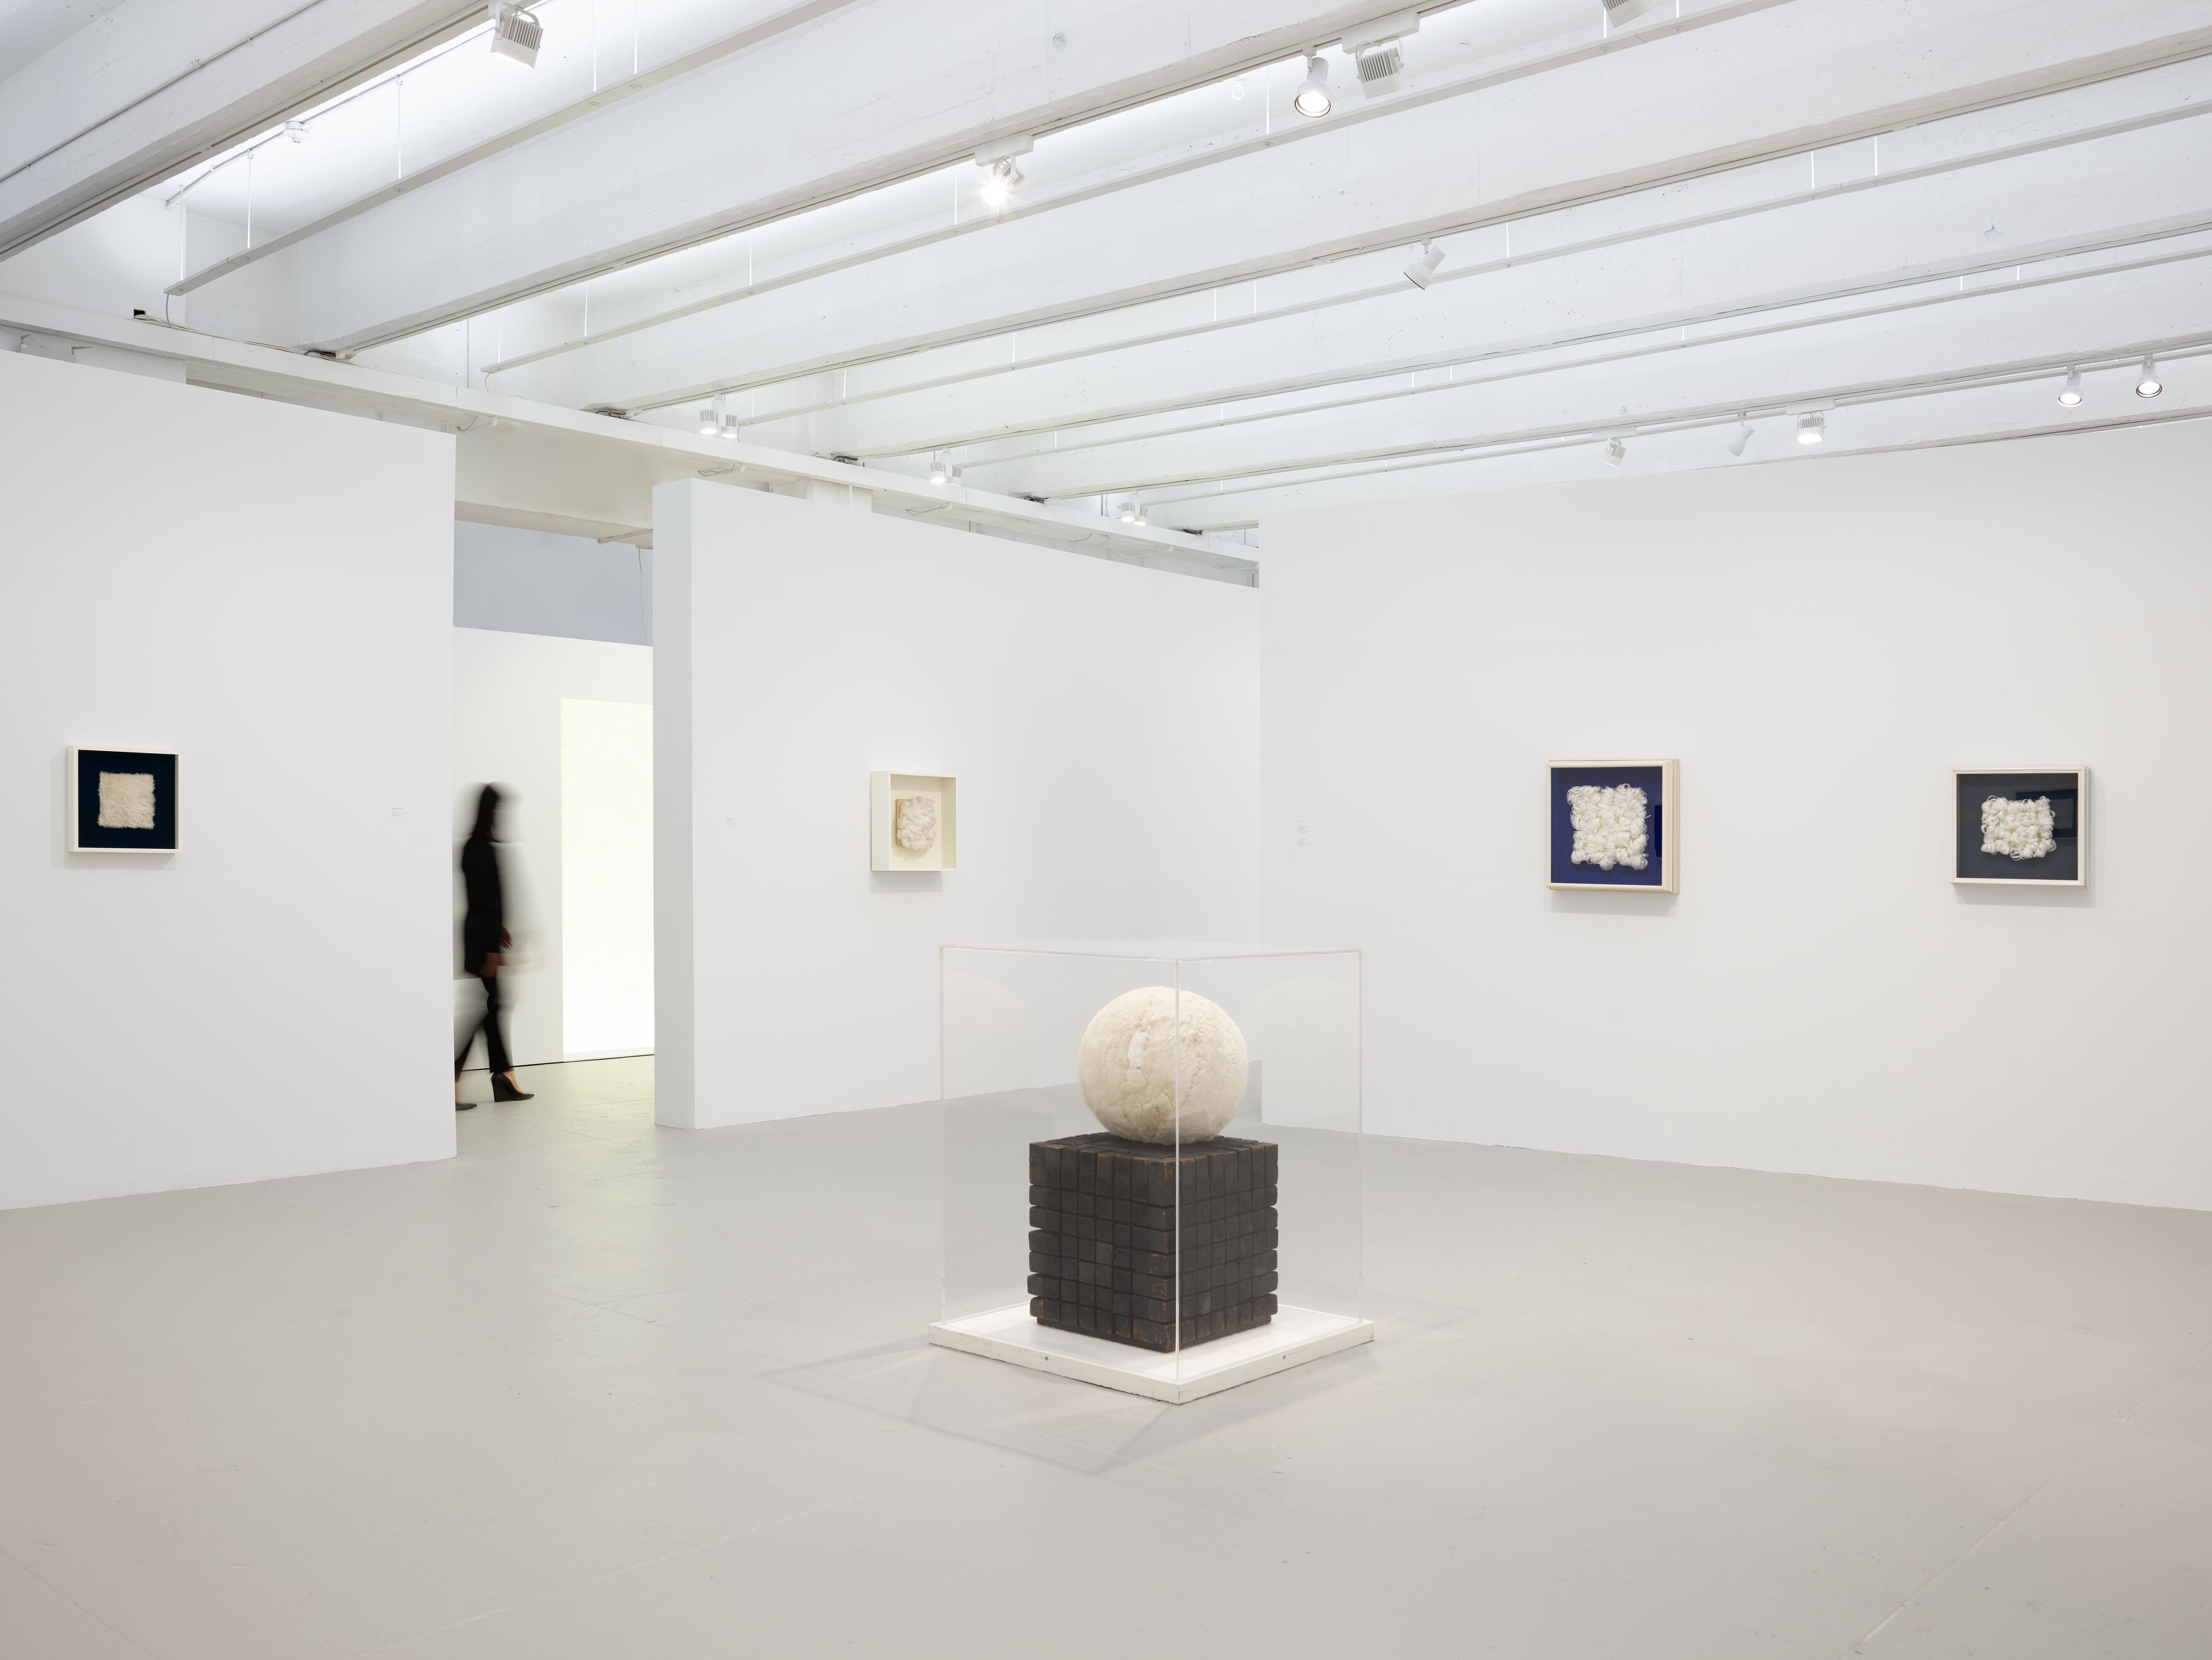 Piero Manzoni: Lines Materials of His Time at Hauser & Wirth